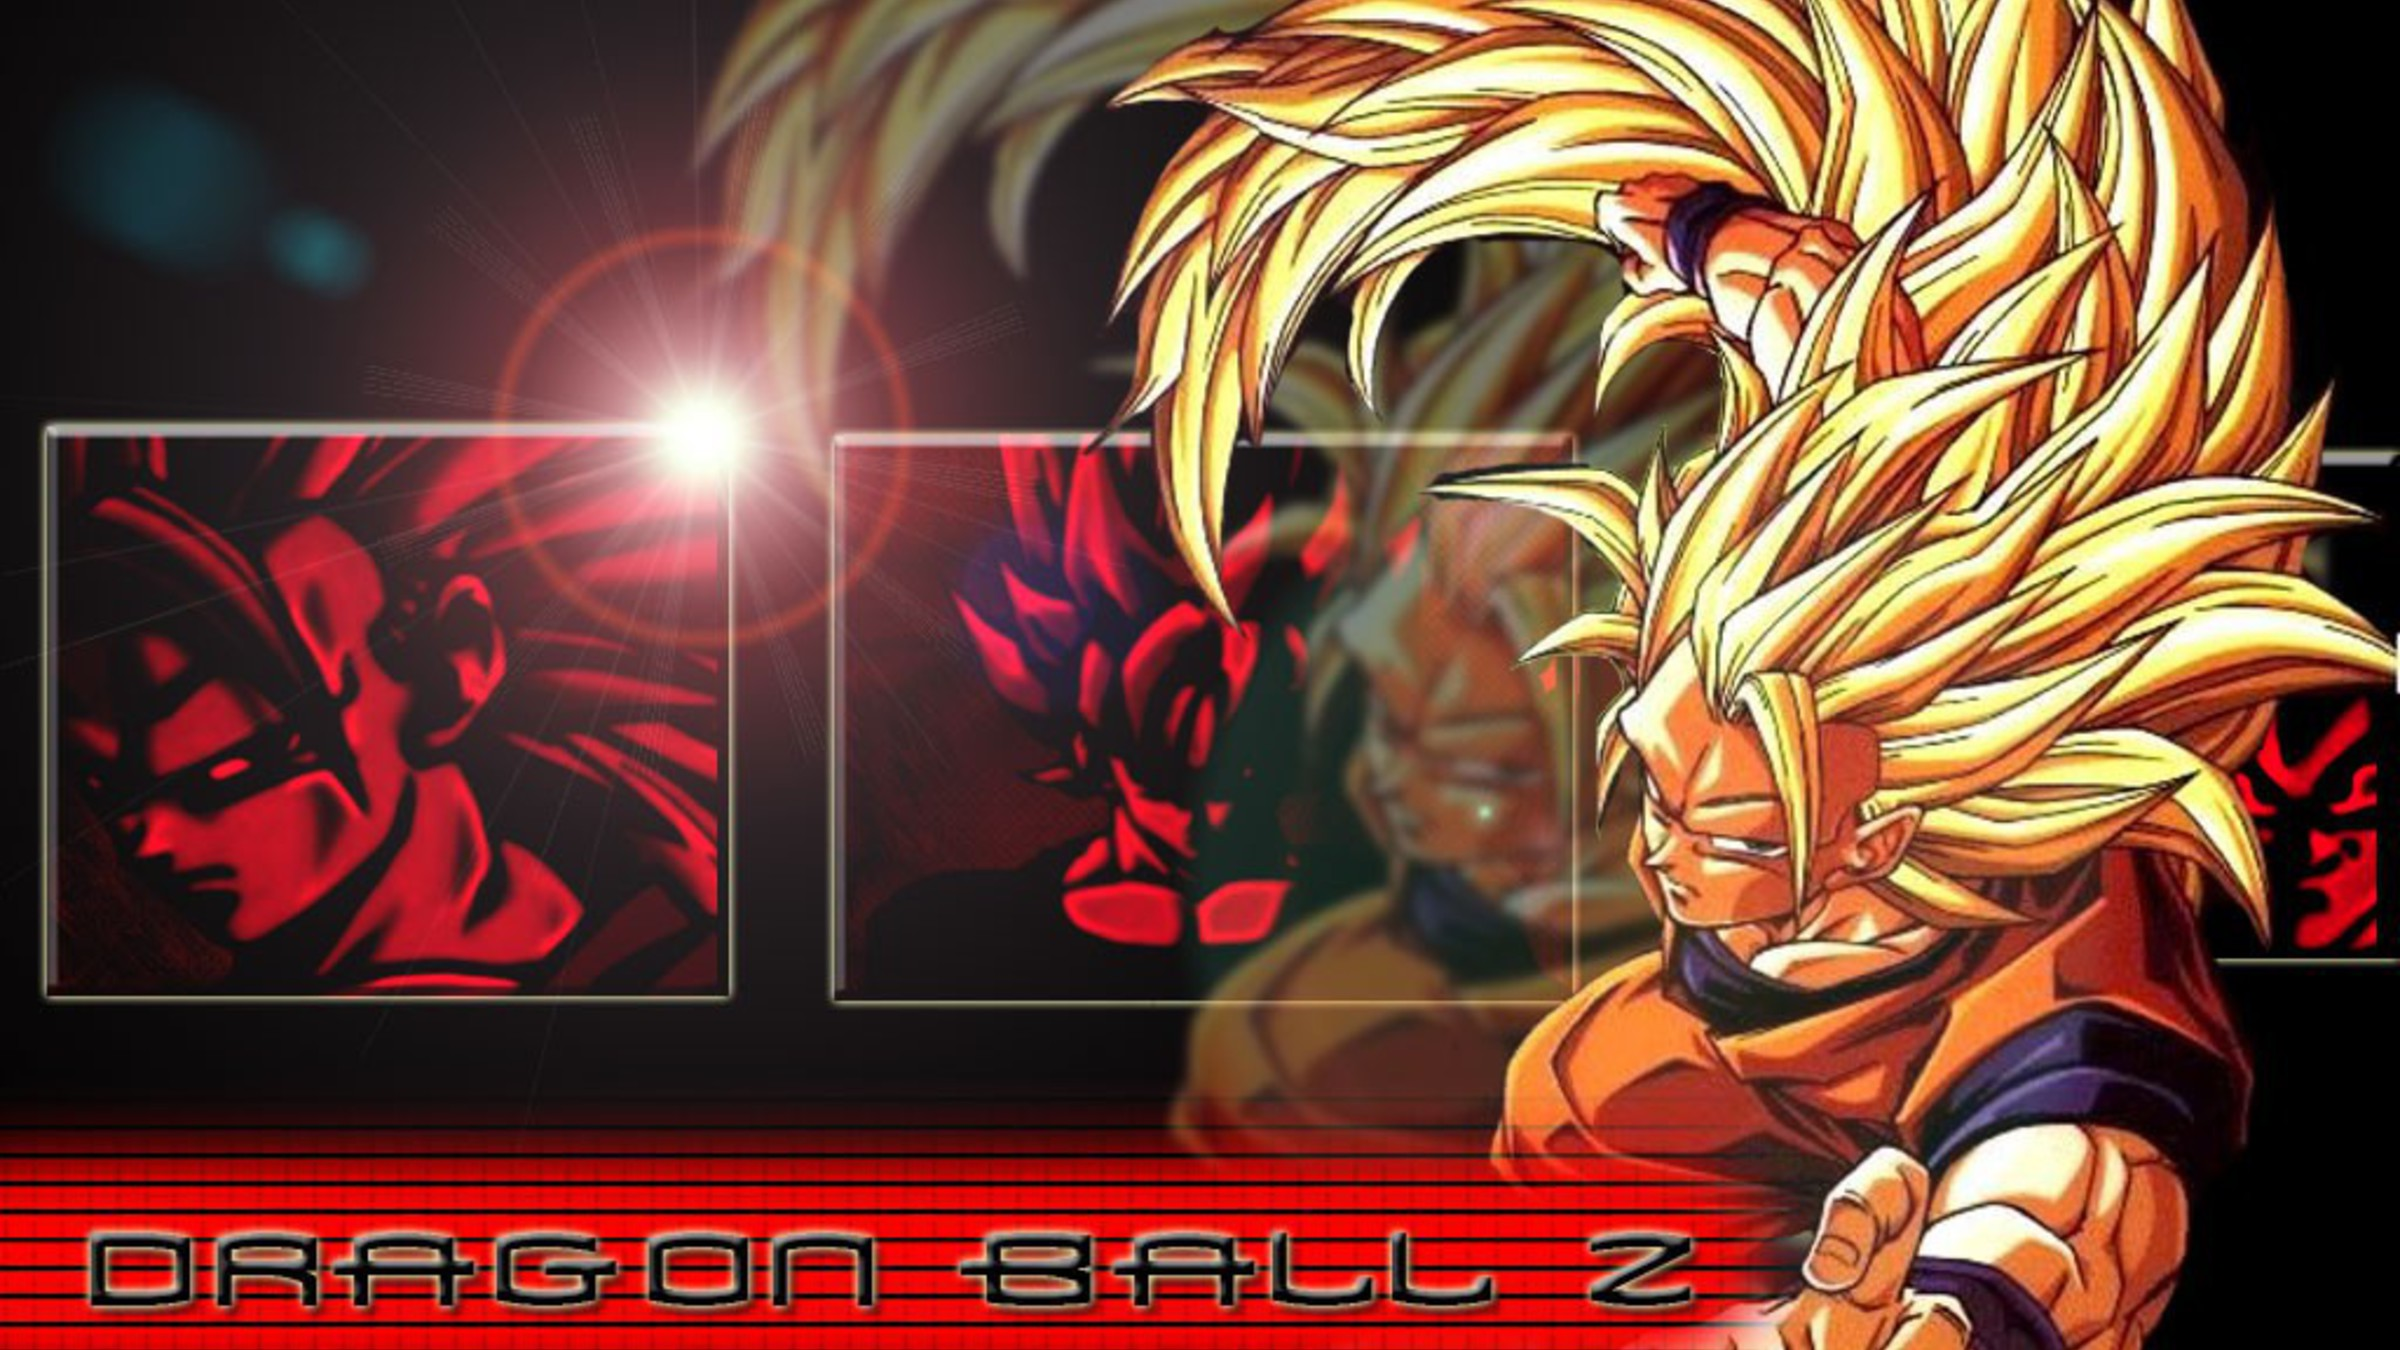 Son Goku Dragon Ball Z Ssj Wallpaper  AllWallpaperin